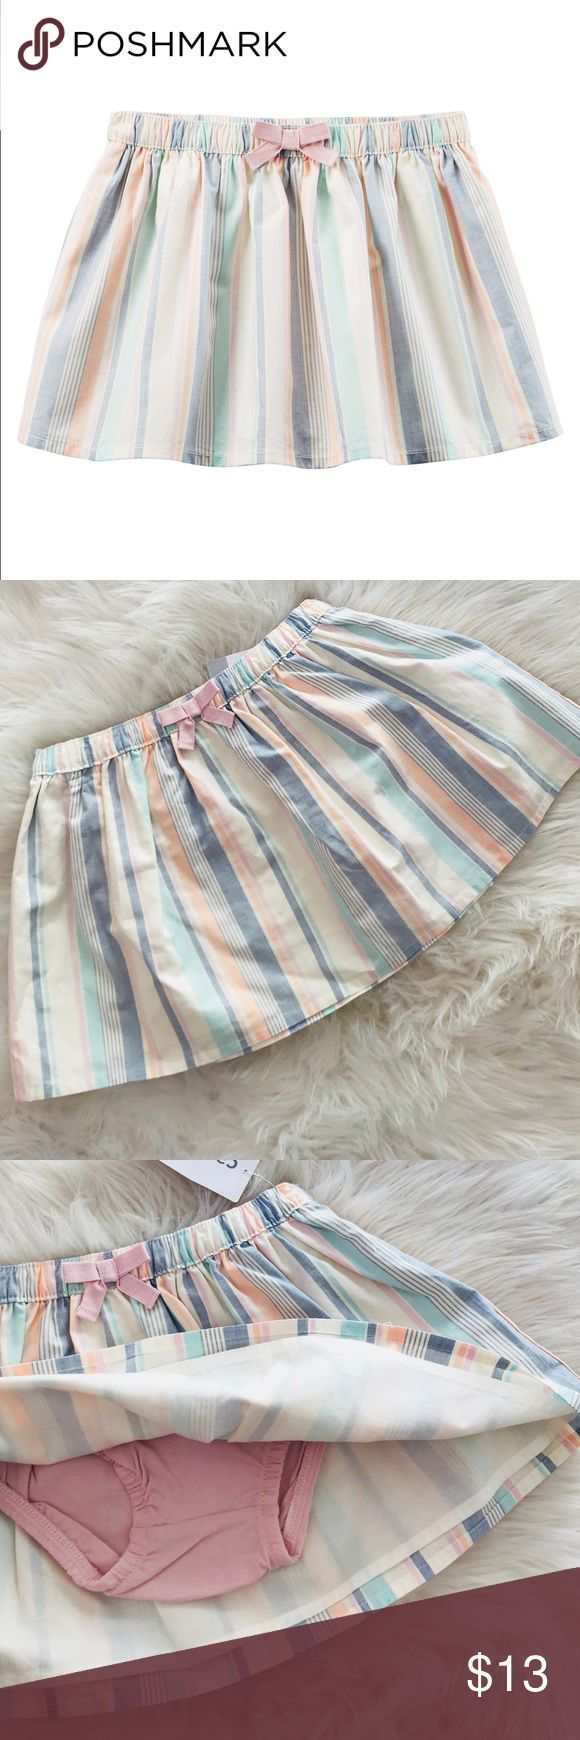 NWT Carter's striped poplin skirt Flouncy and pretty with an elastic waistband and tacked bow. NWT !  Skirt: 100% cotton poplin Lining: 100% cotton lawn Attached panty: 100% cotton jersey Carter's Bottoms Skirts